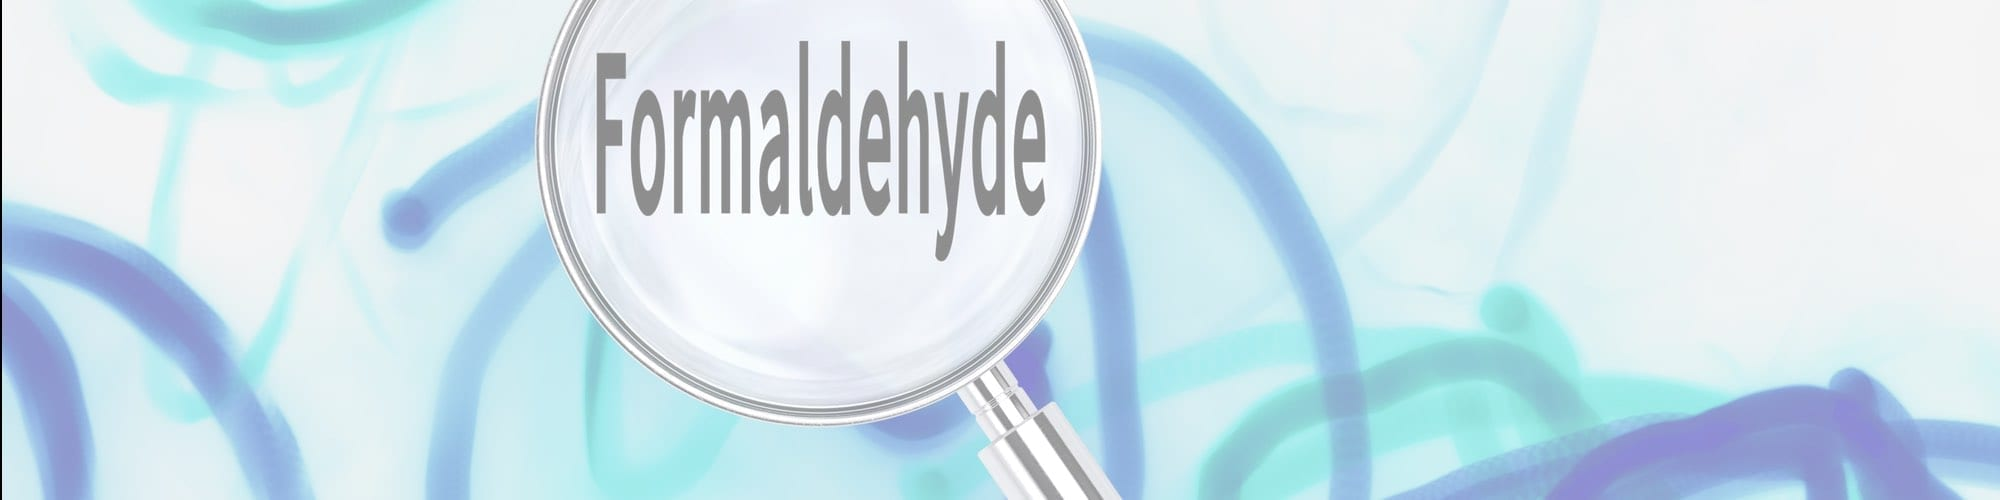 Formaldehyde Exposure in the Workplace – How Do You Know If It's Harming You?